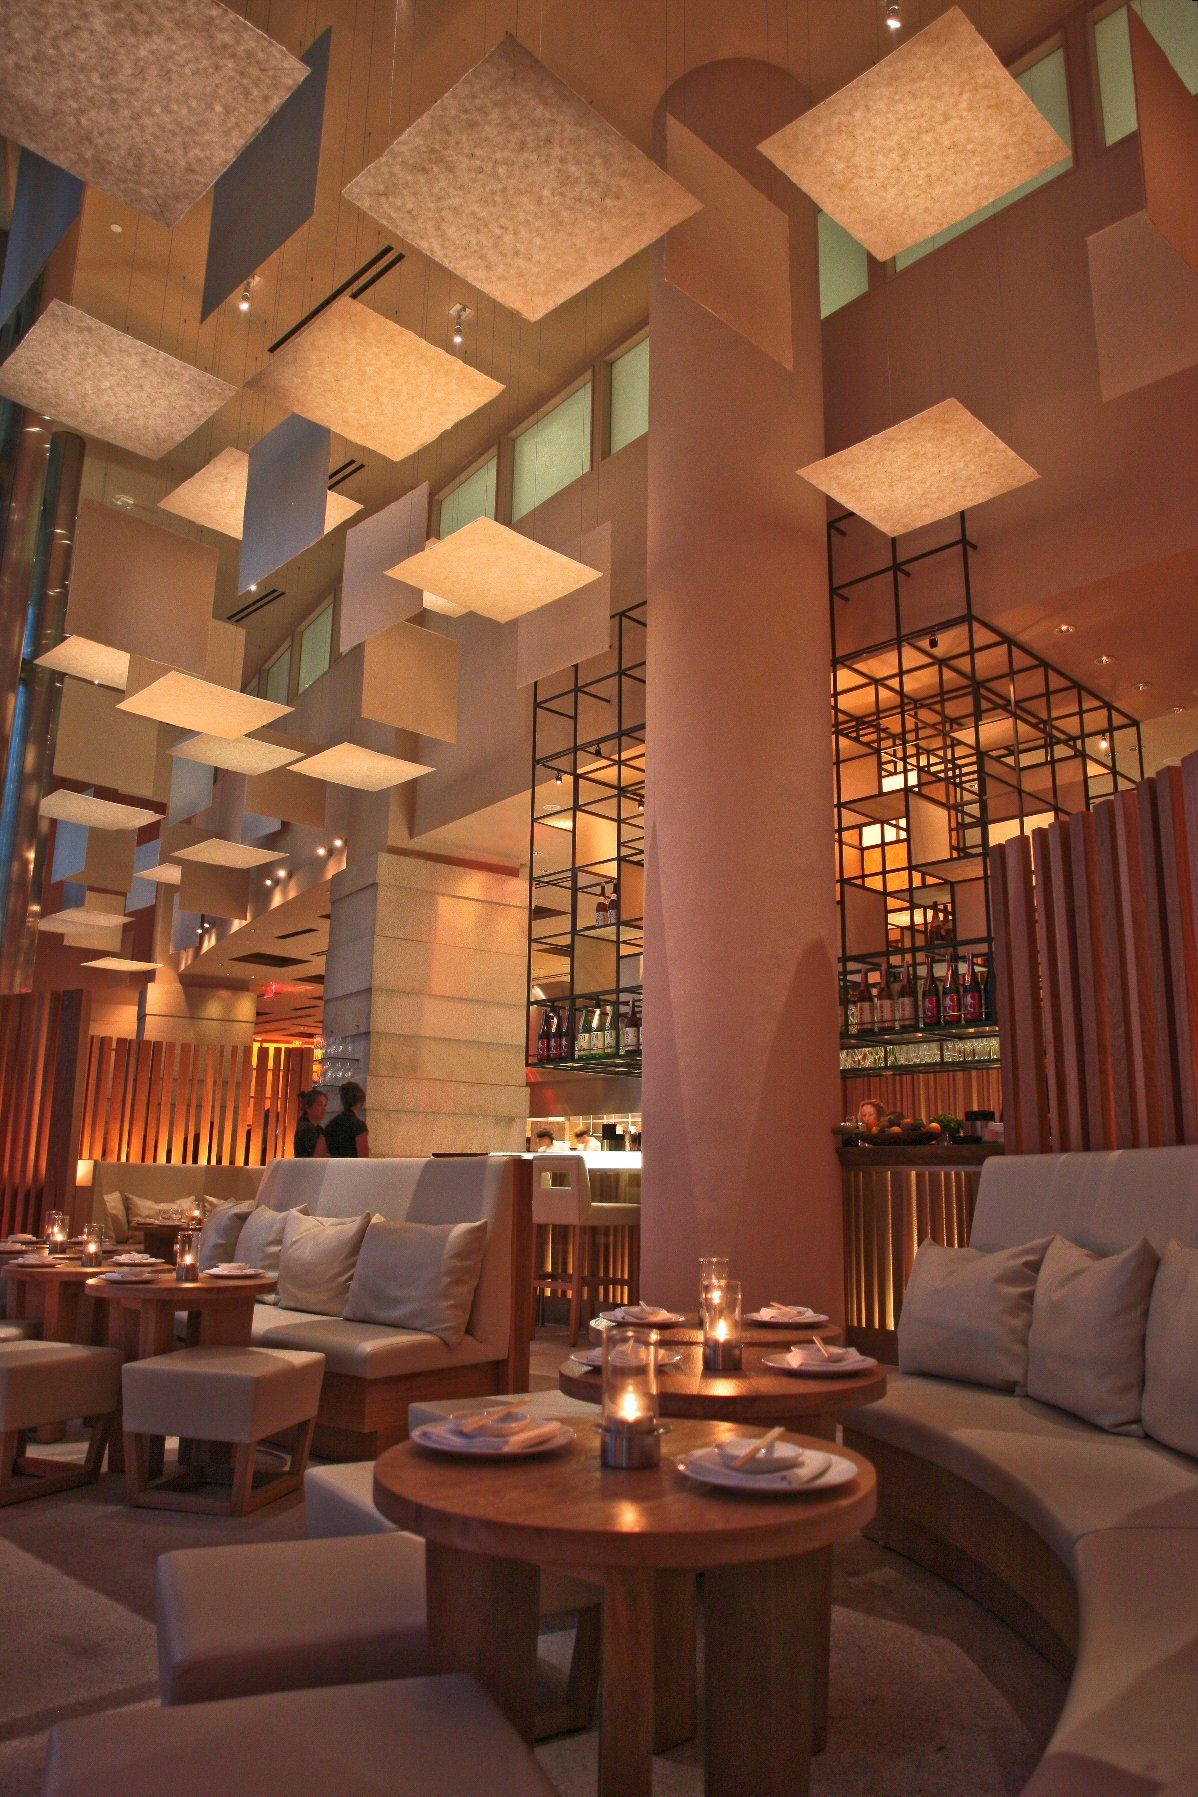 Zuma East Meets Biscayne Favorite Places & Spaces